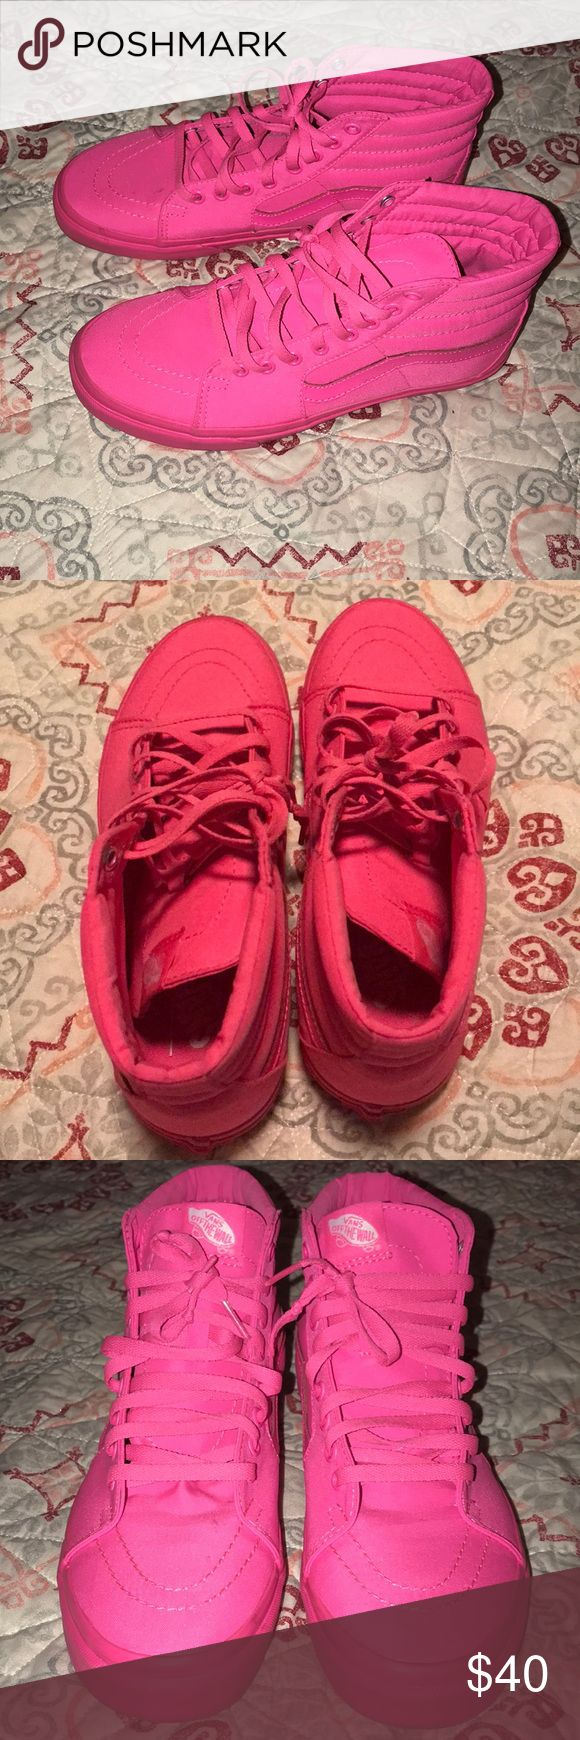 Hot Pink Vans!! Price Firm!! Unique Hot Pink Vans, Size 10.5 Woman's. Vans Shoes Sneakers